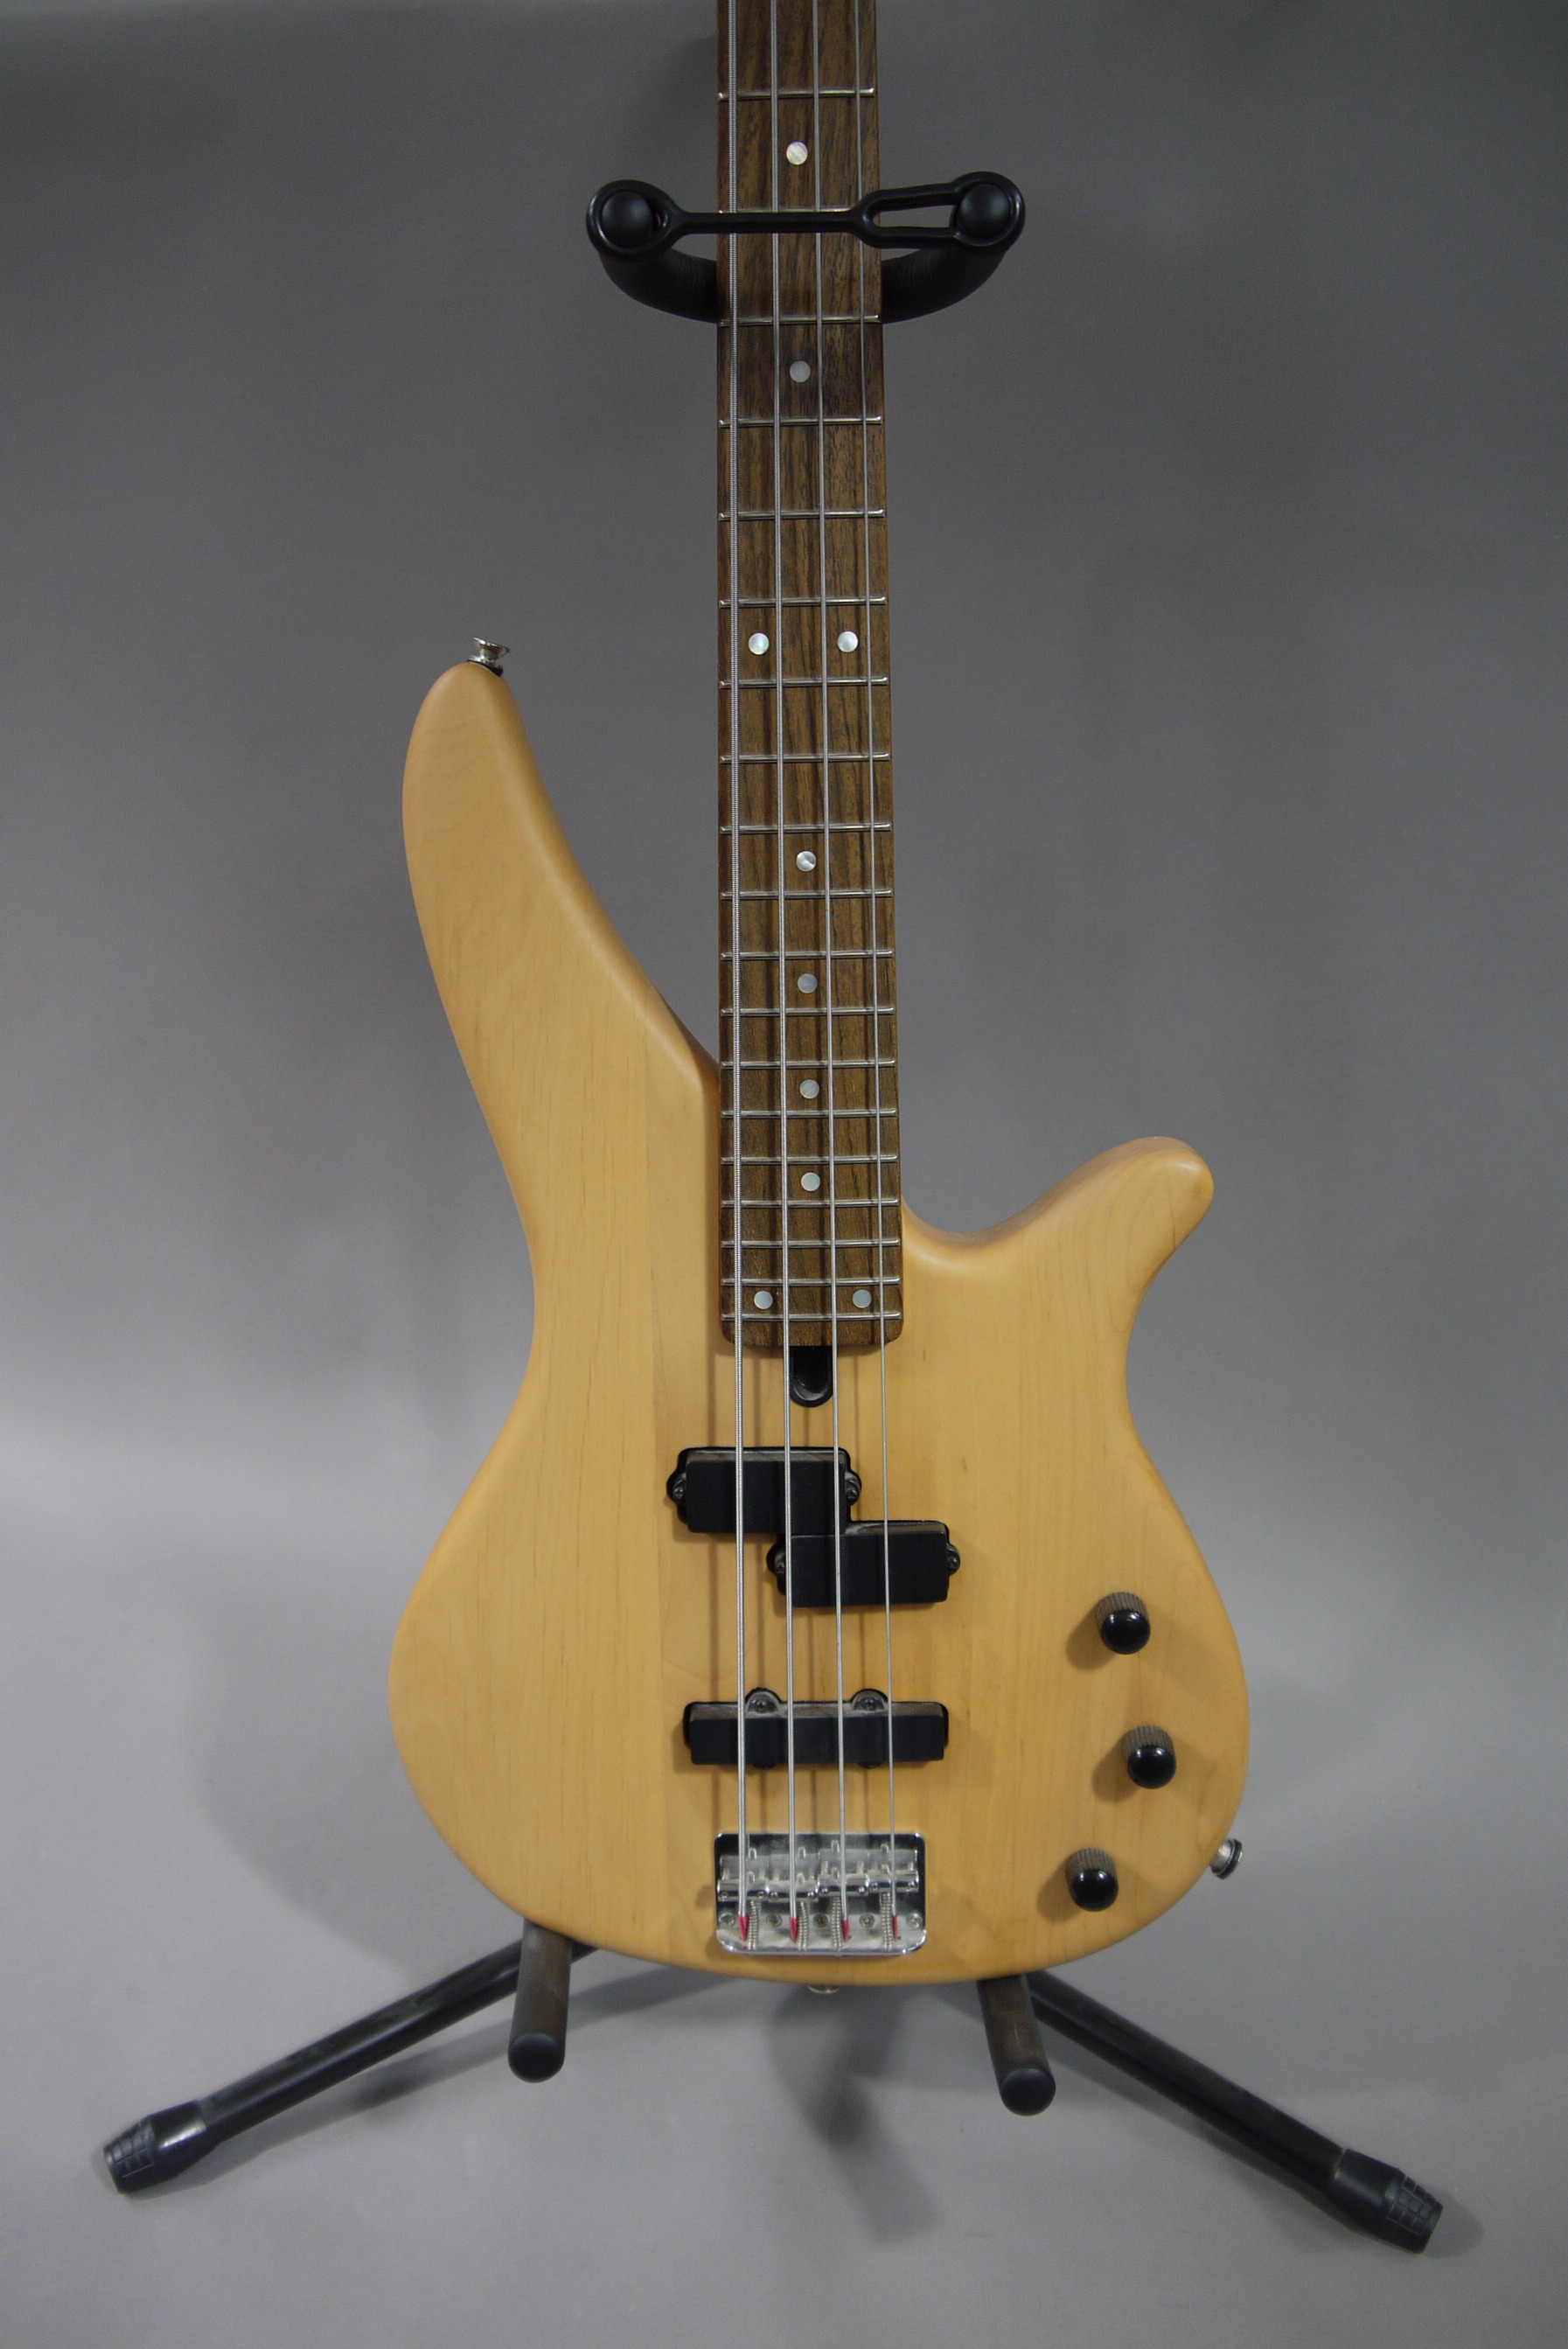 yamaha electric bass guitar serial number rbx 270j on stagg stand. Black Bedroom Furniture Sets. Home Design Ideas